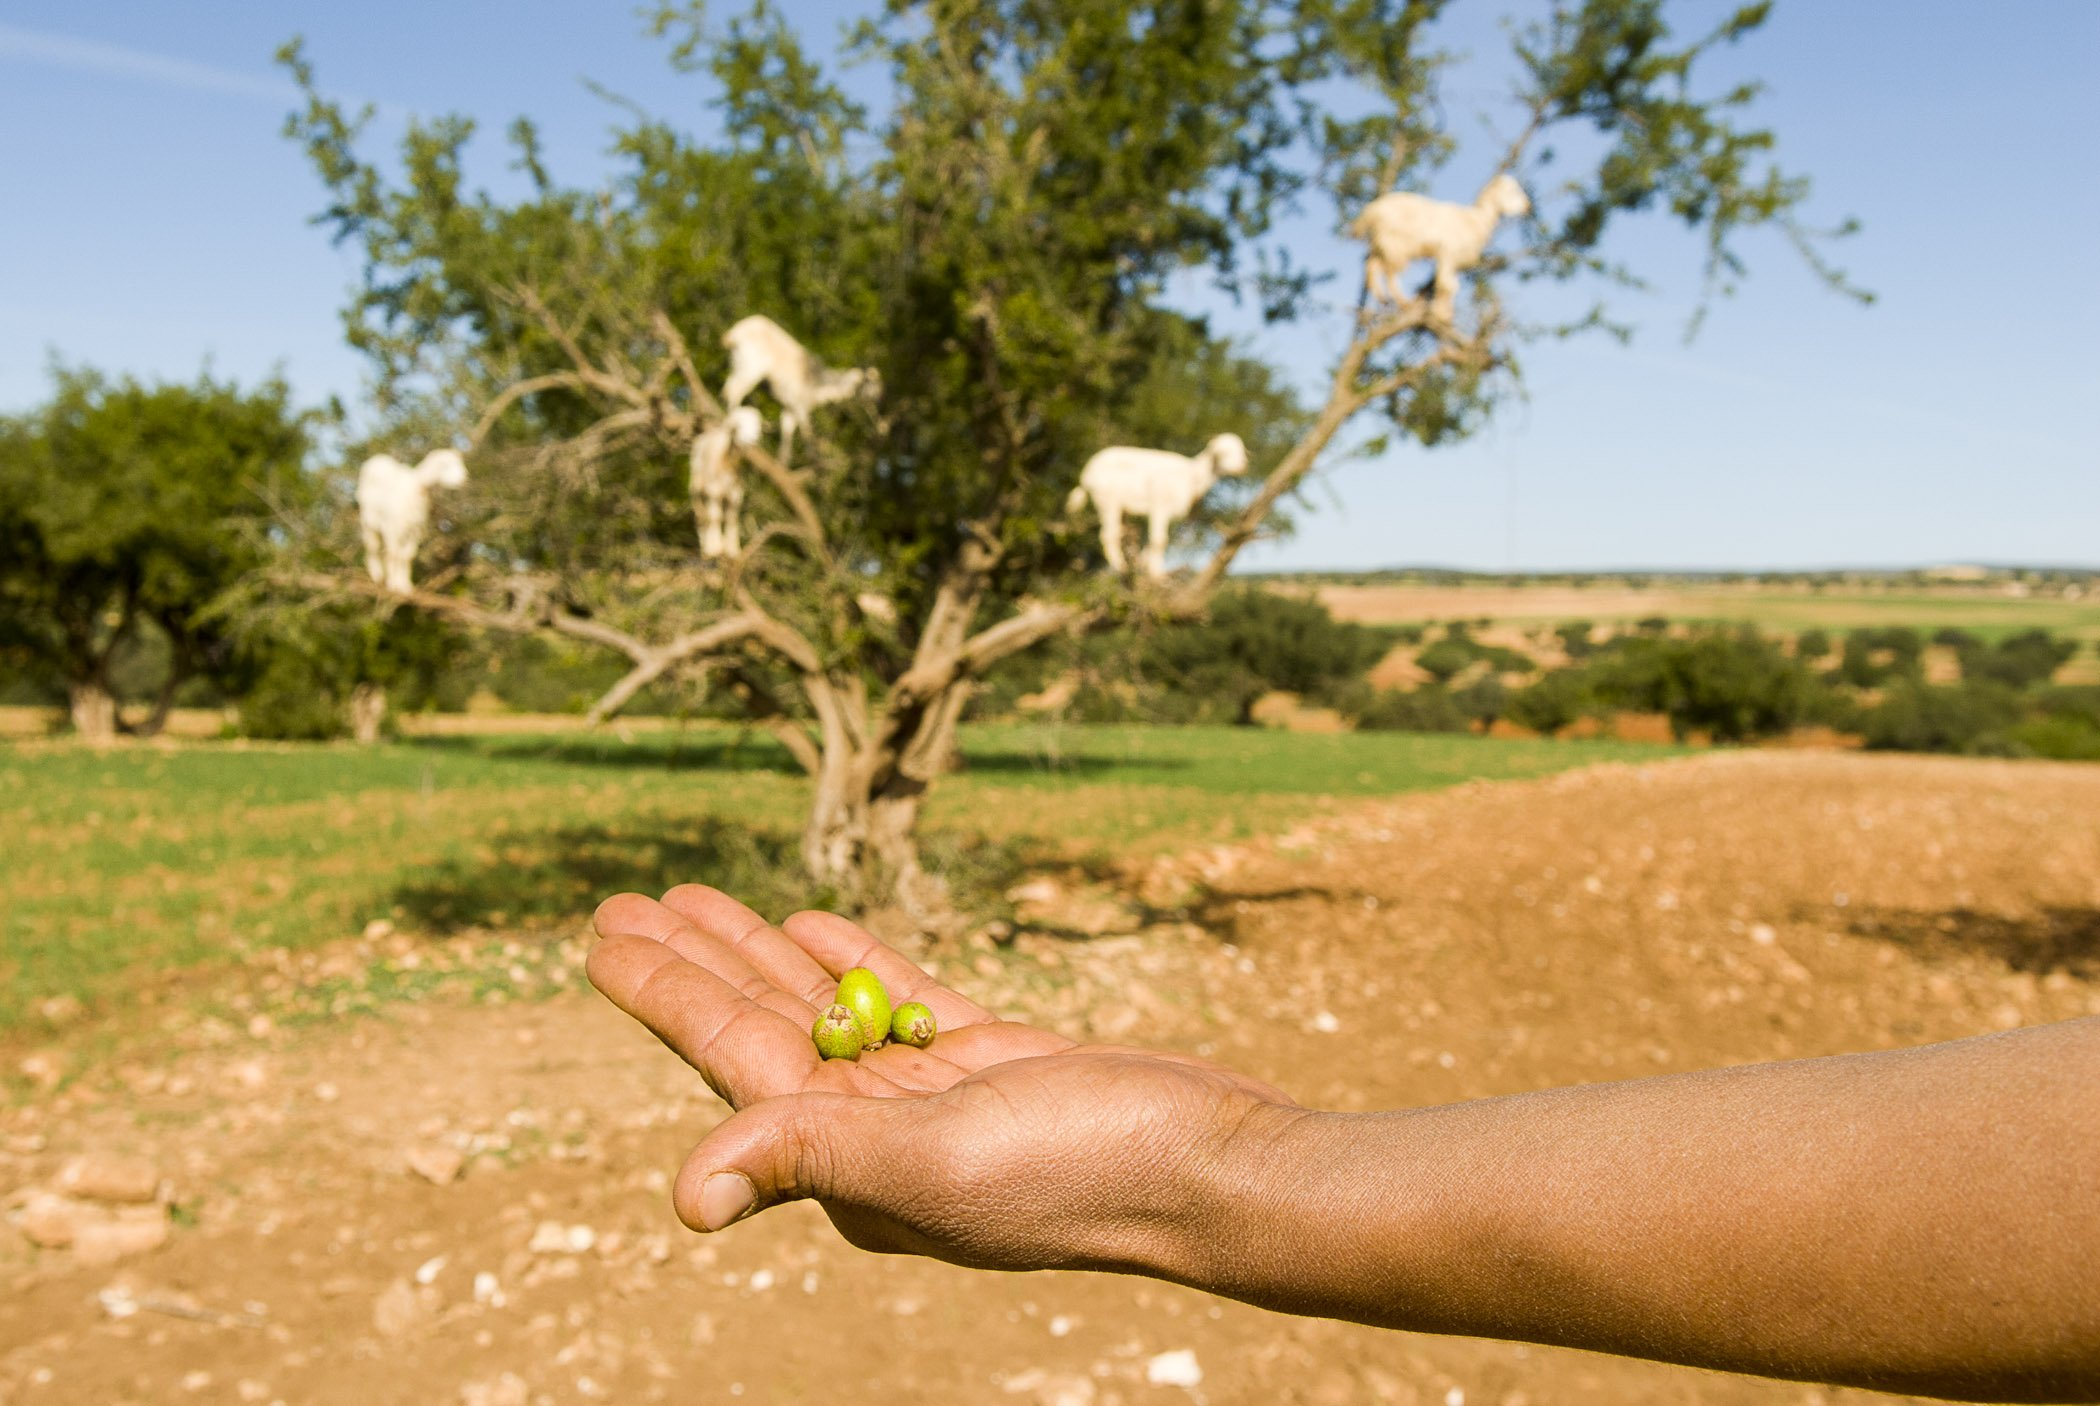 Argan oil is produced from the olive-like nuts of the Moroccan Ironwood tree